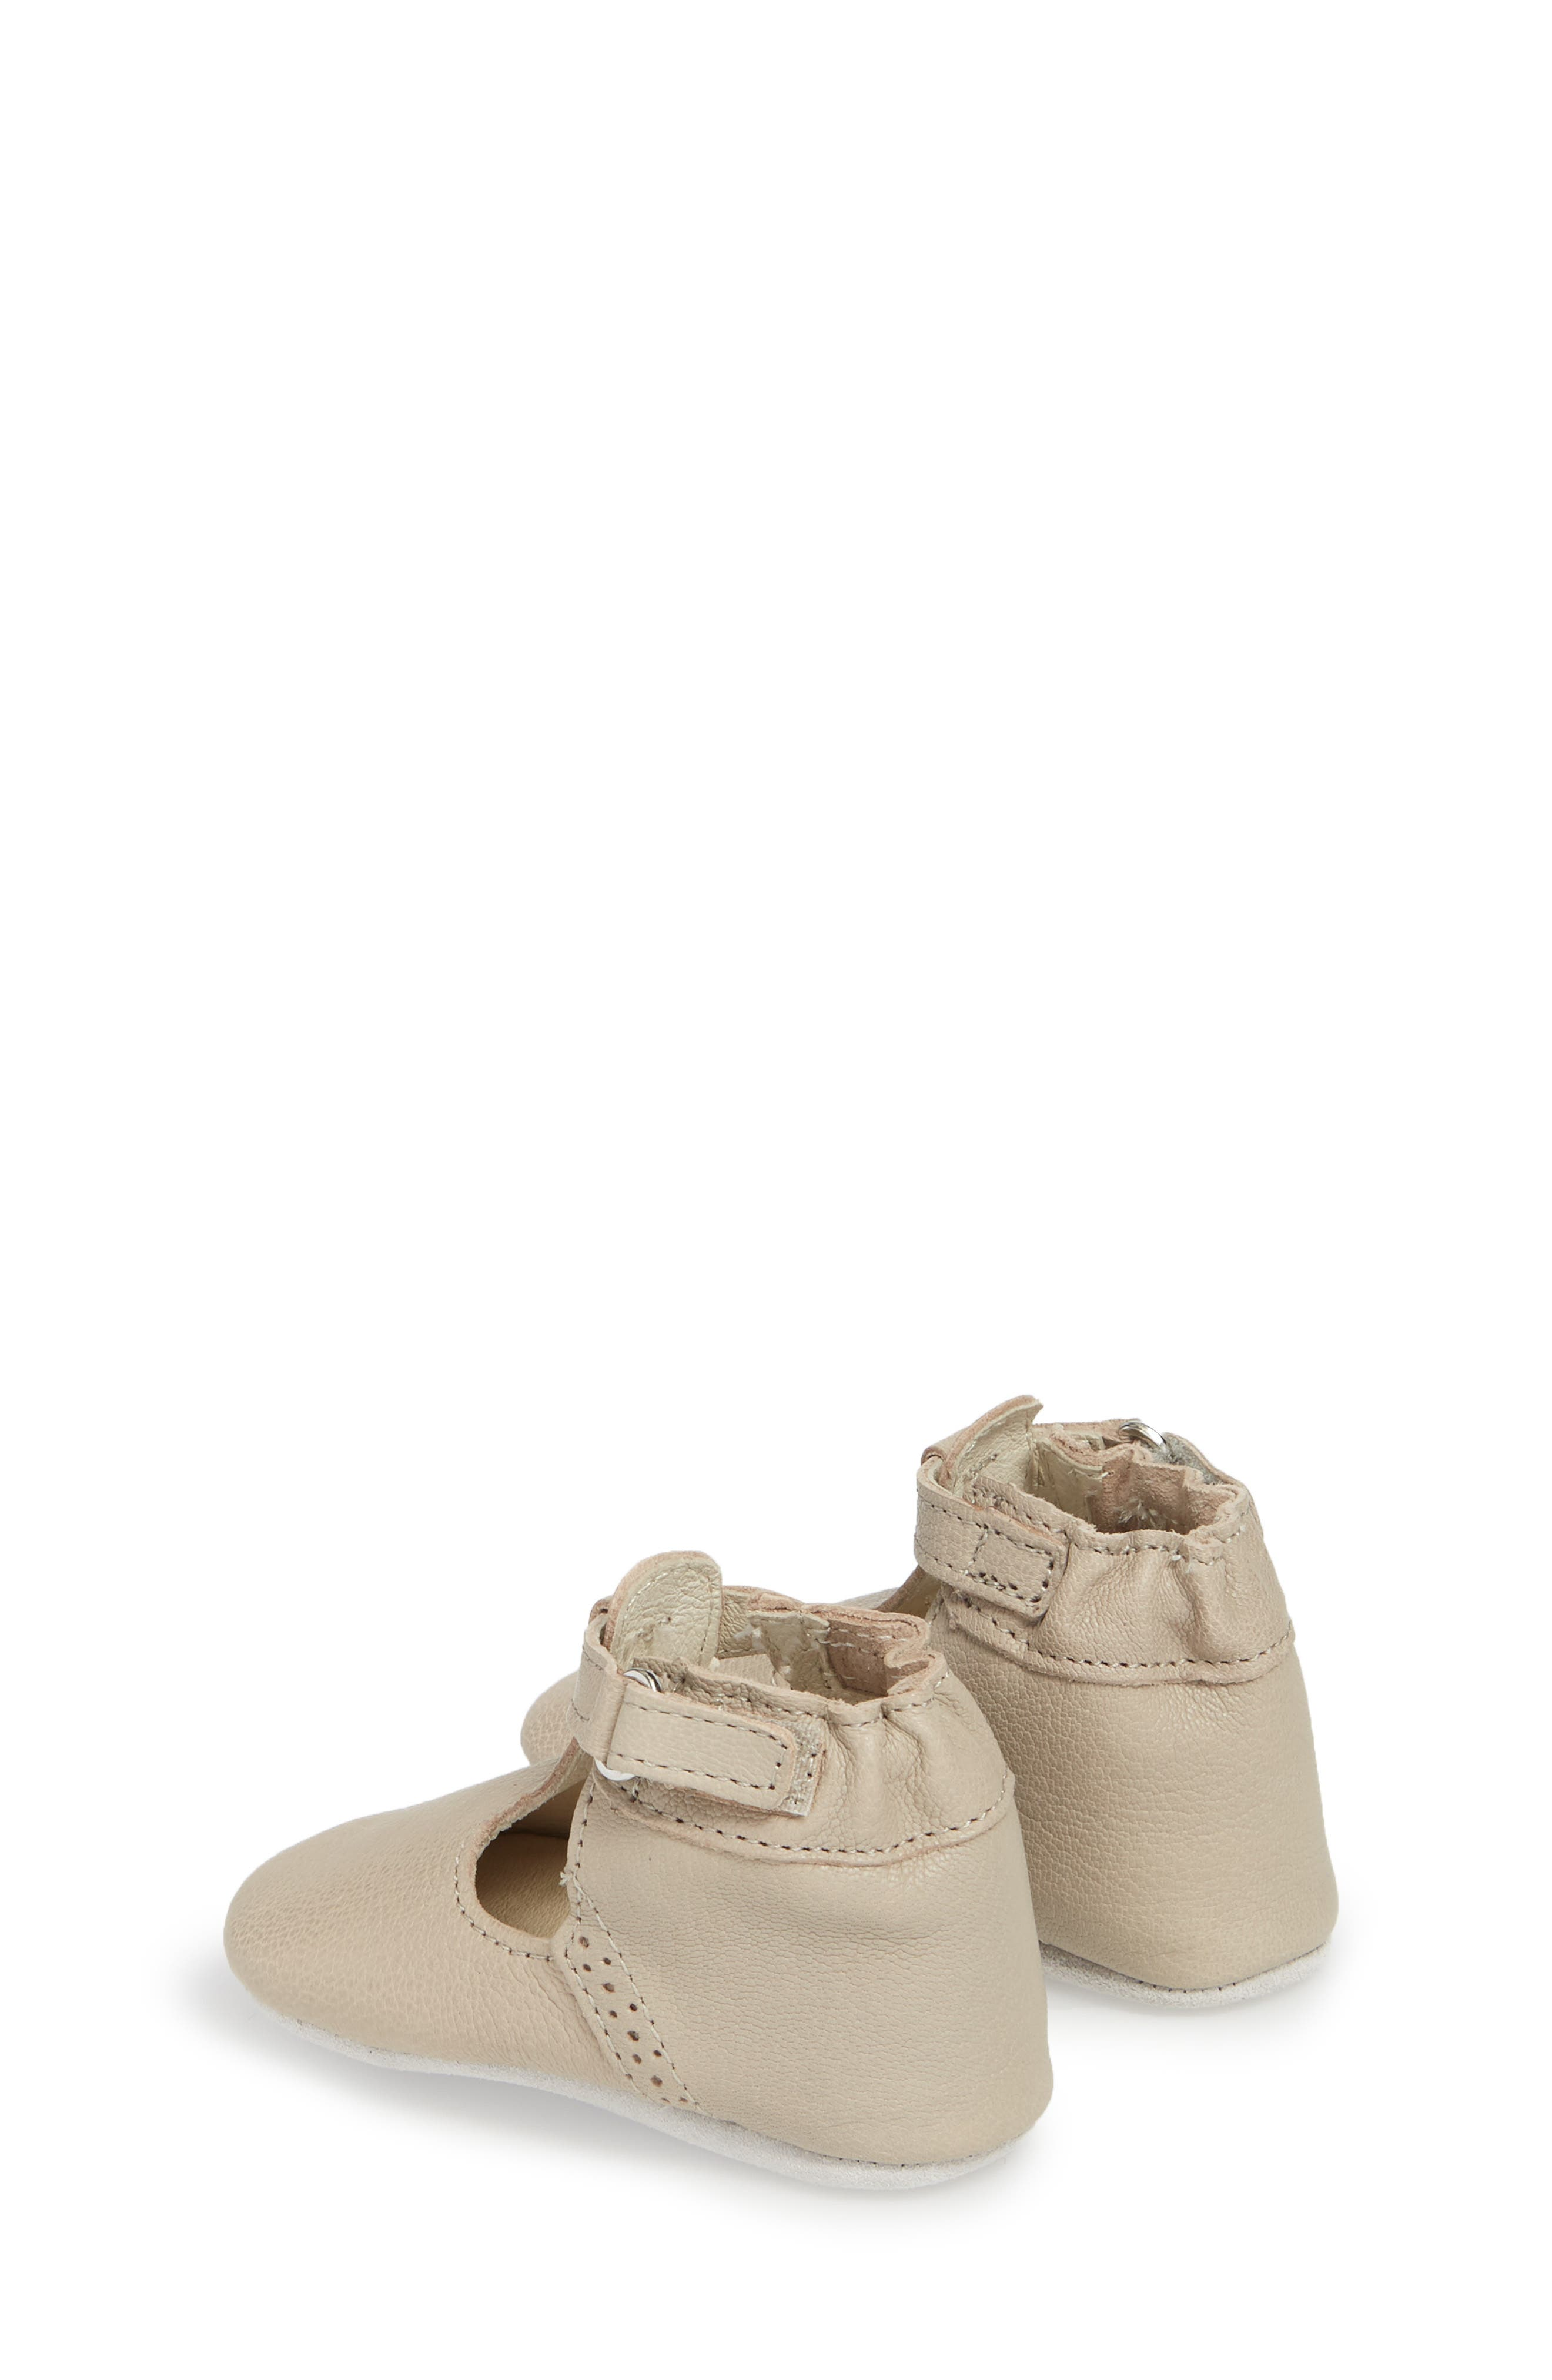 Penny T-Strap Mary Jane Crib Shoe,                             Alternate thumbnail 2, color,                             TAUPE